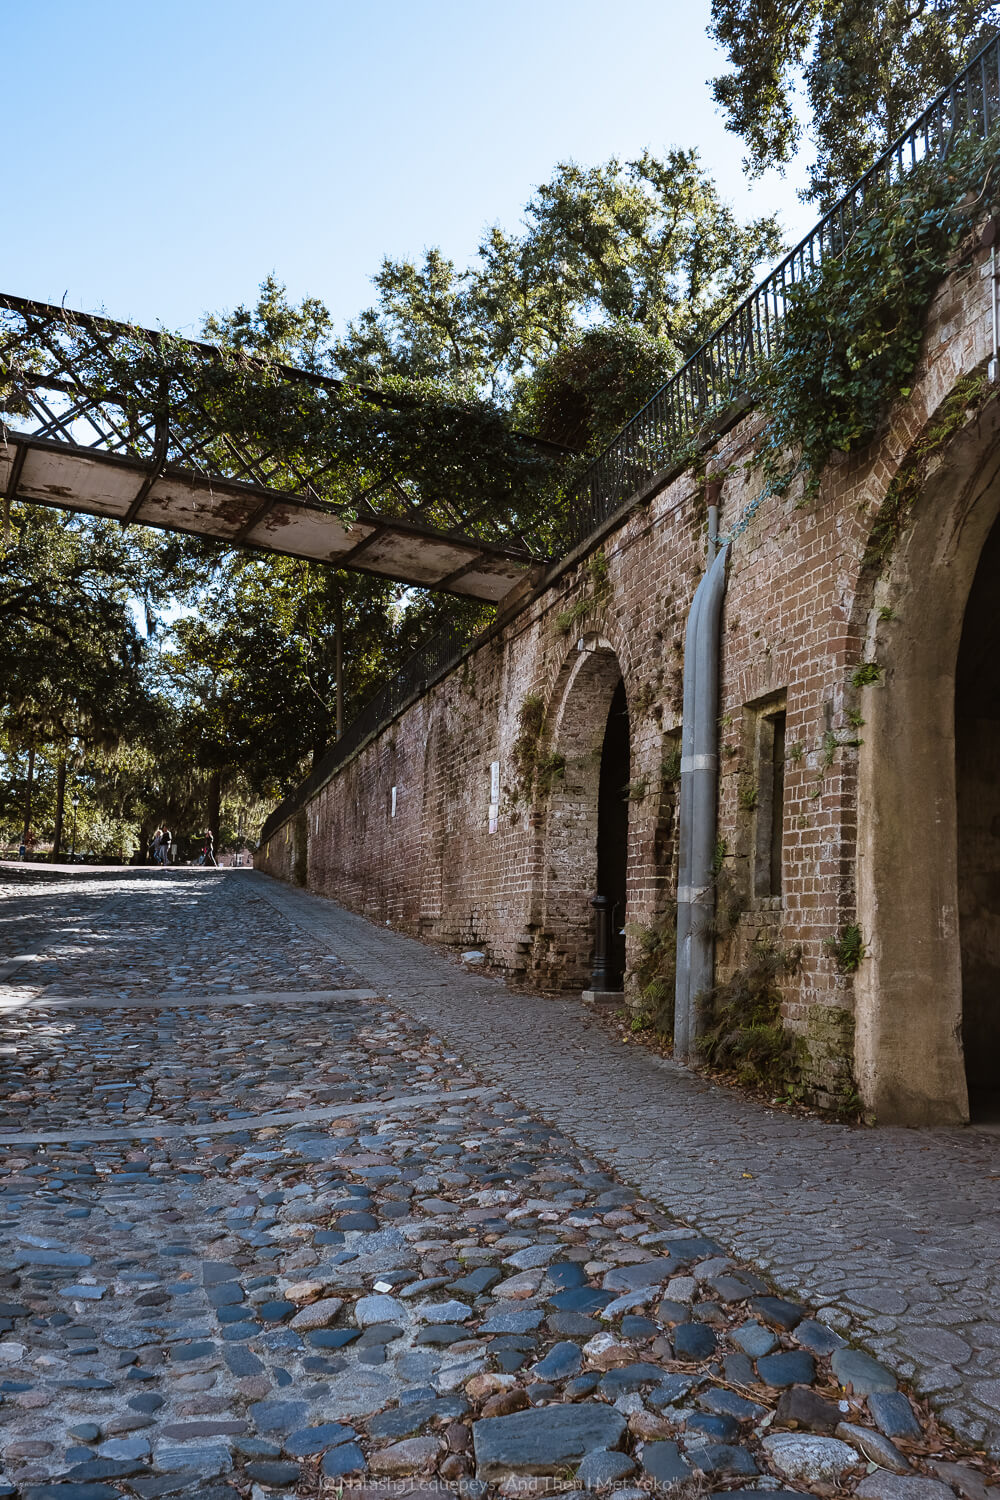 """Slave holding rooms near River Street in Savannah, Georgia. Travel photography and guide by © Natasha Lequepeys for """"And Then I Met Yoko"""". #savannah #usa #travelguide #travelblog"""